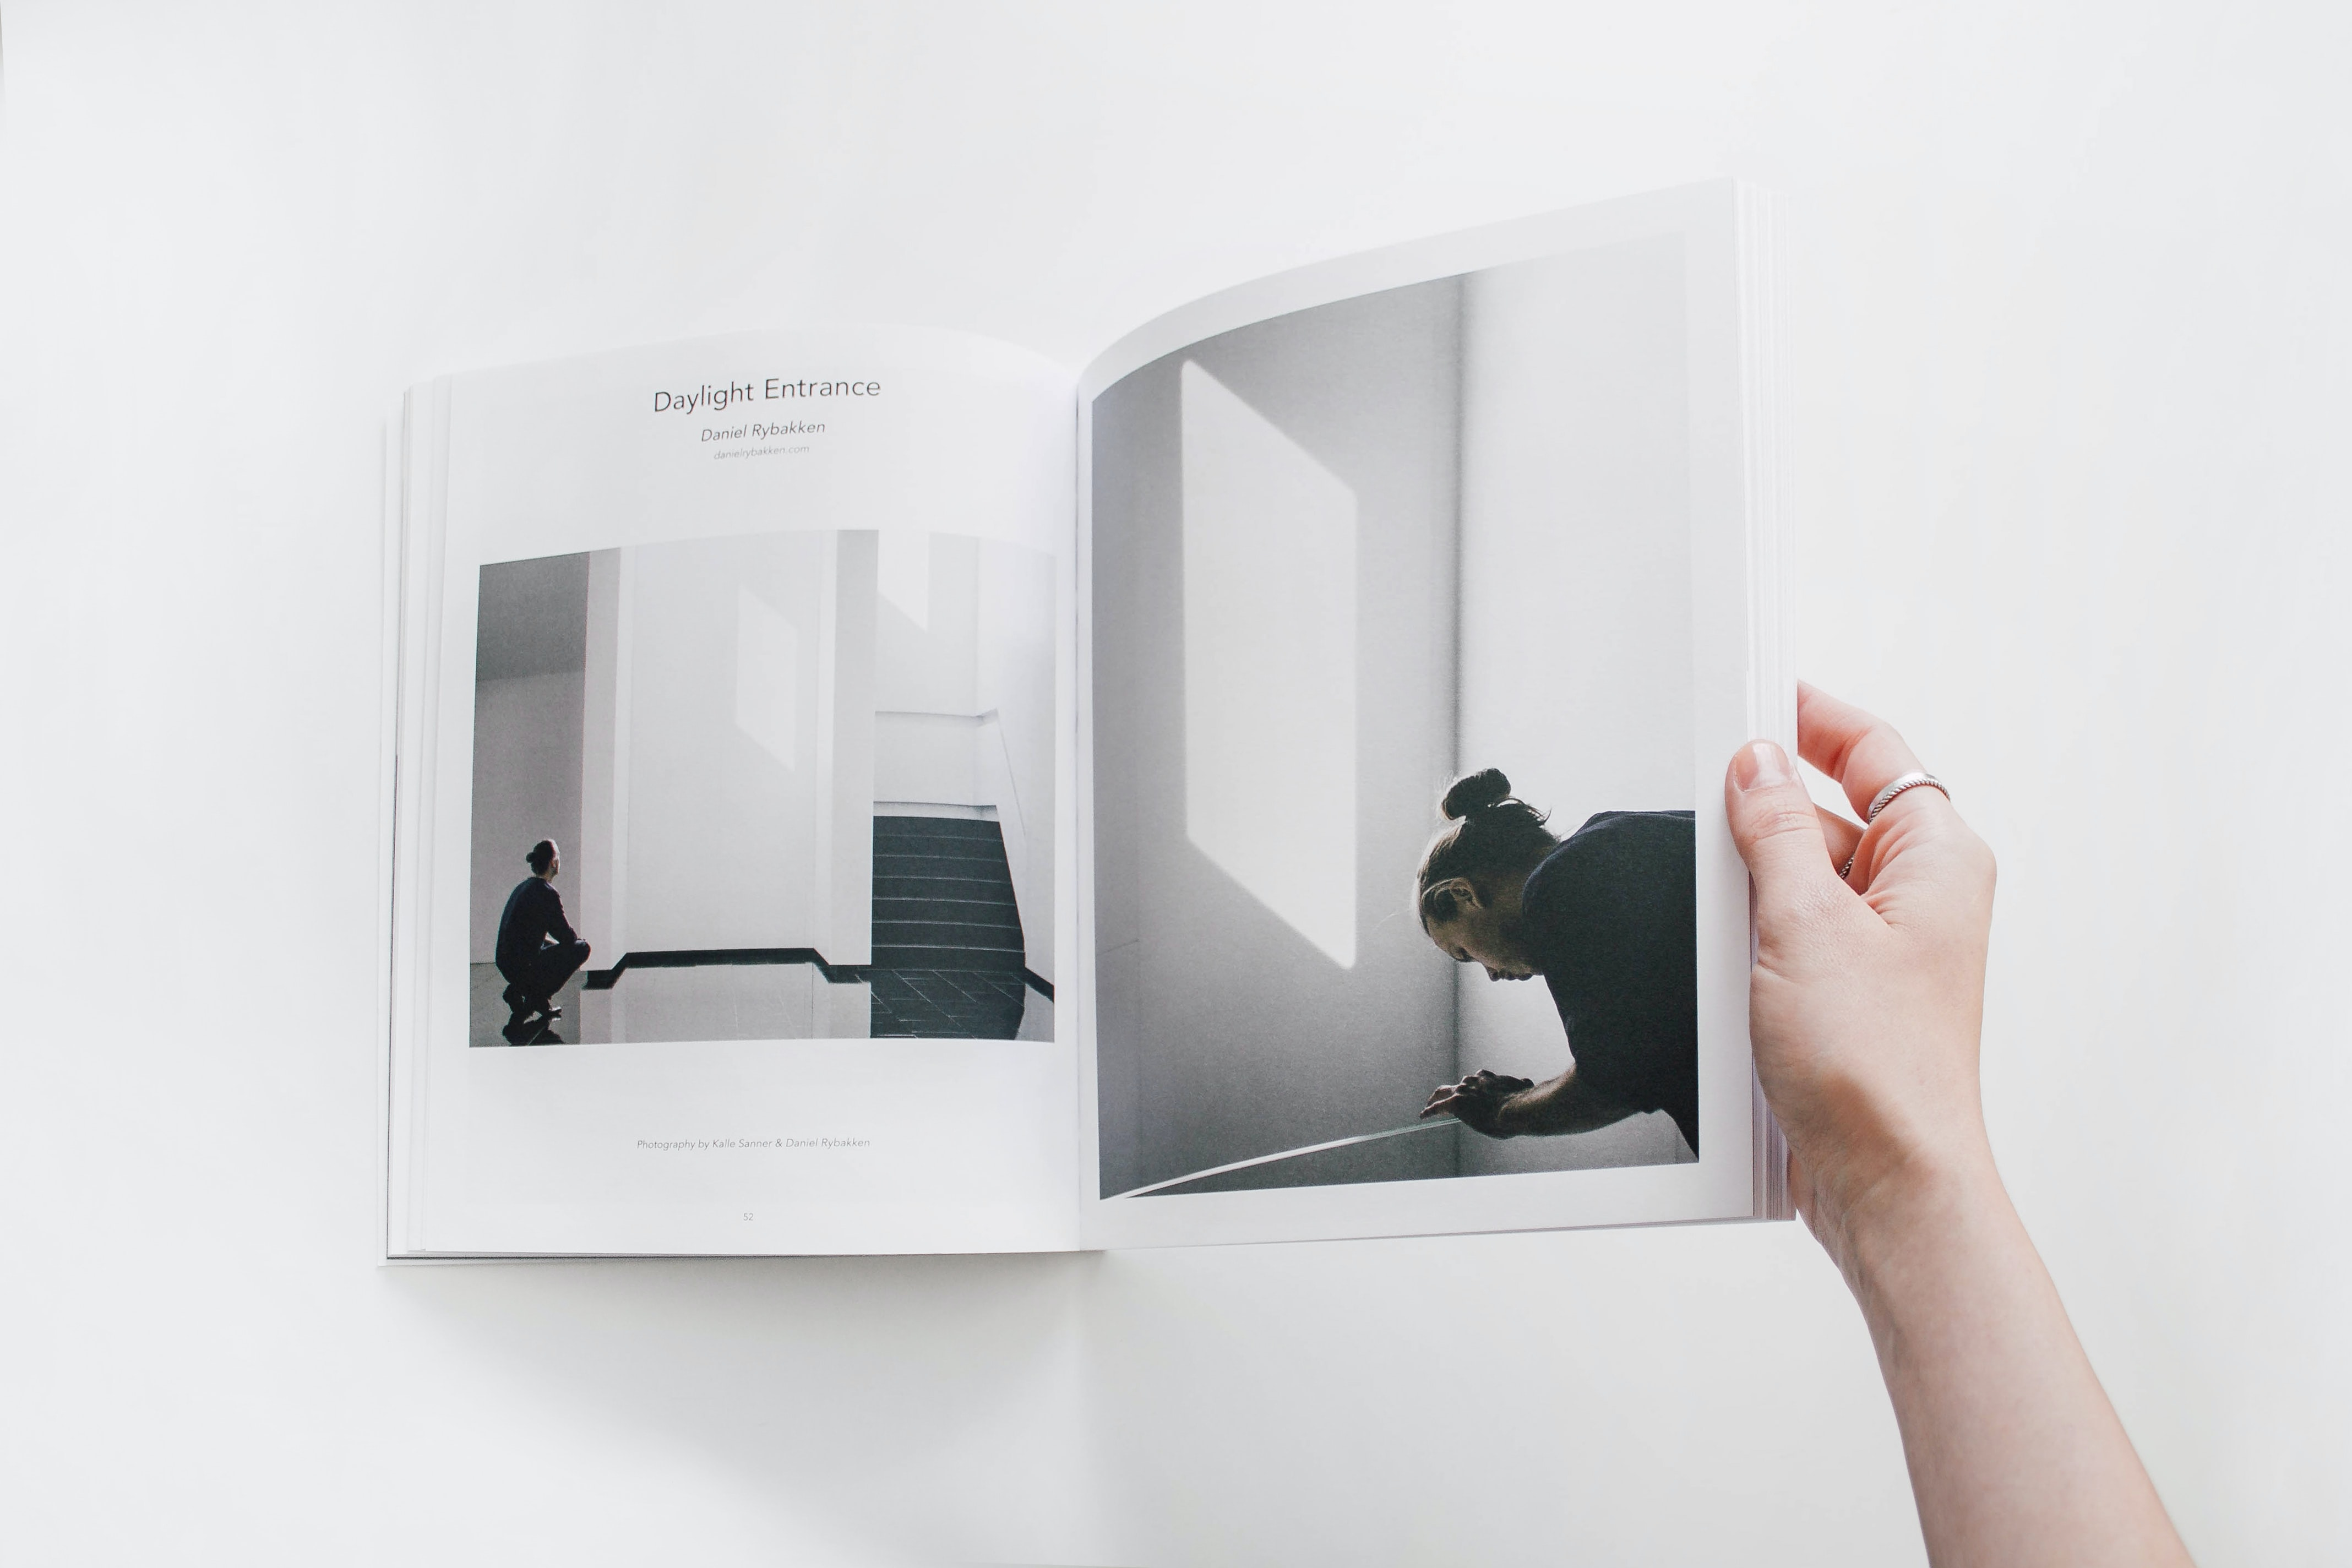 A person flipping through an interior design book.